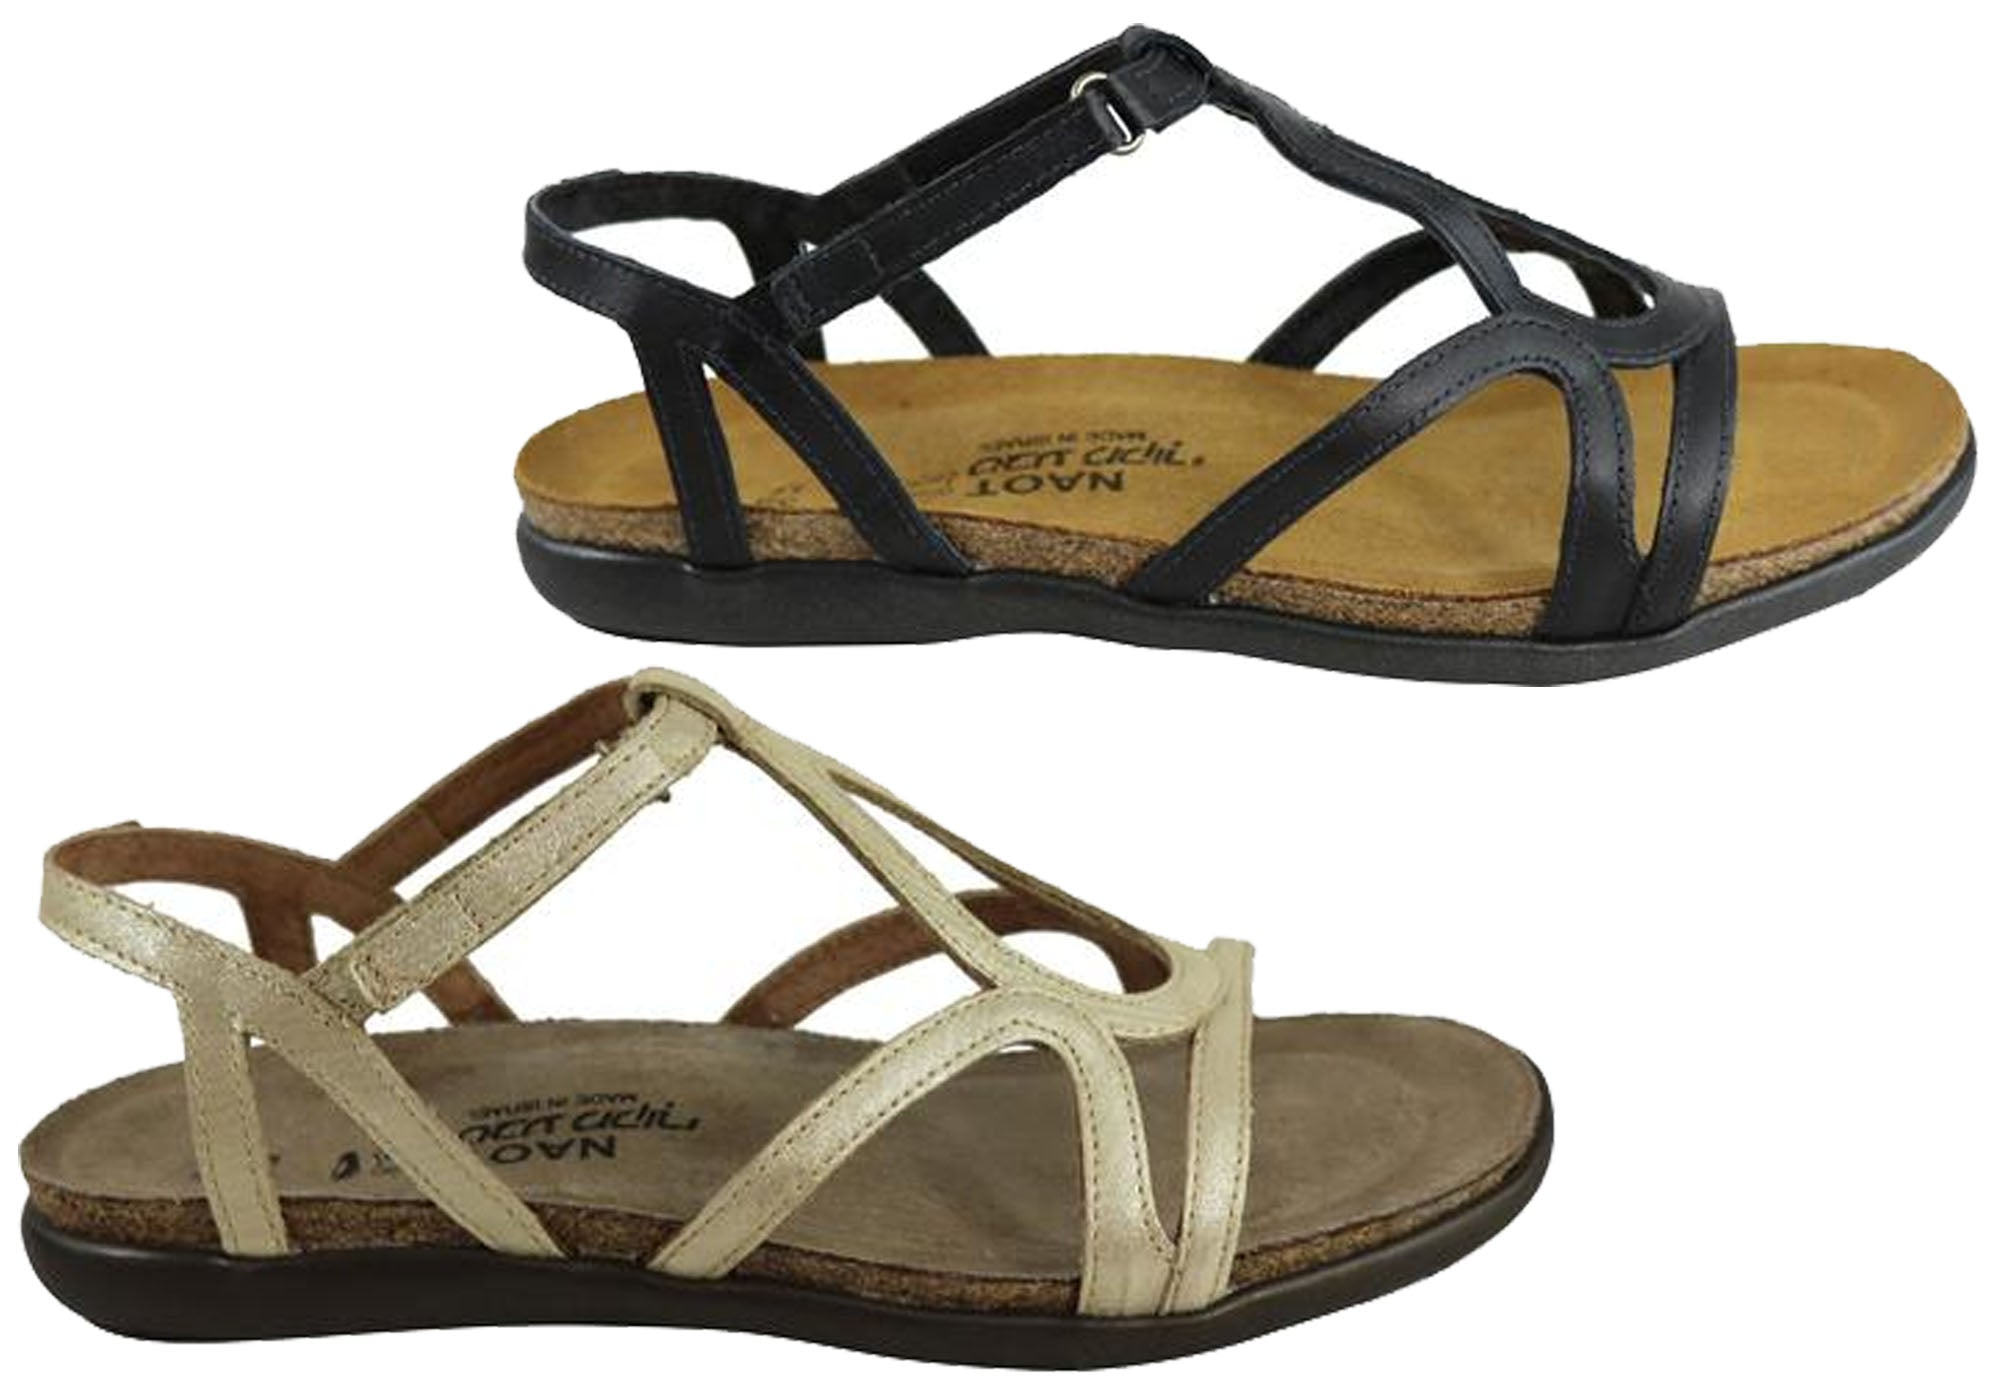 ae167e1196e New Naot Dorith Womens Comfort Cushioned Supportive Flat Leather ...